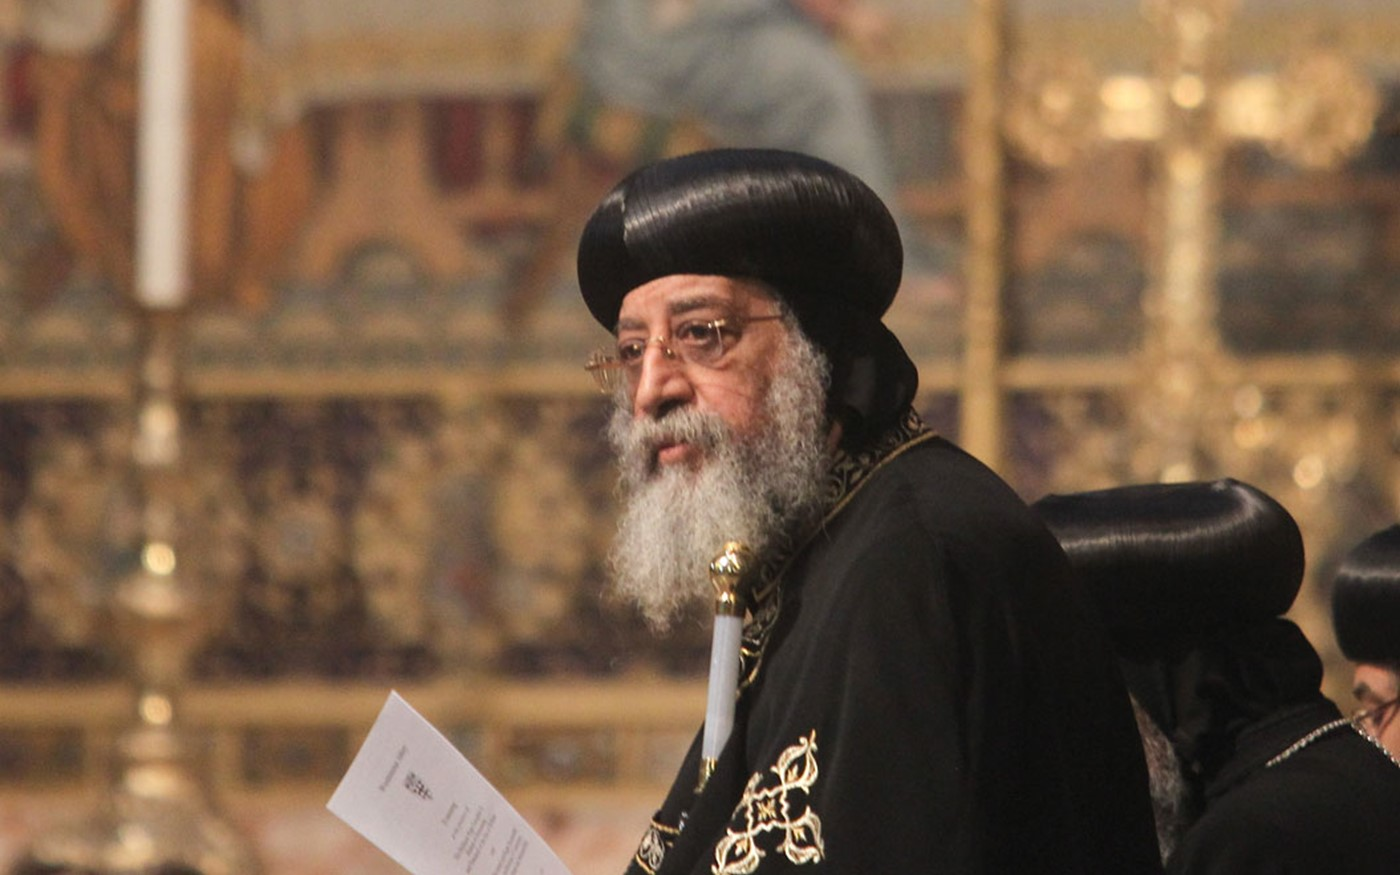 His Holiness Pope Tawadros II, Bishop of Alexandria and Patriarch of the See of St Mark, during the service